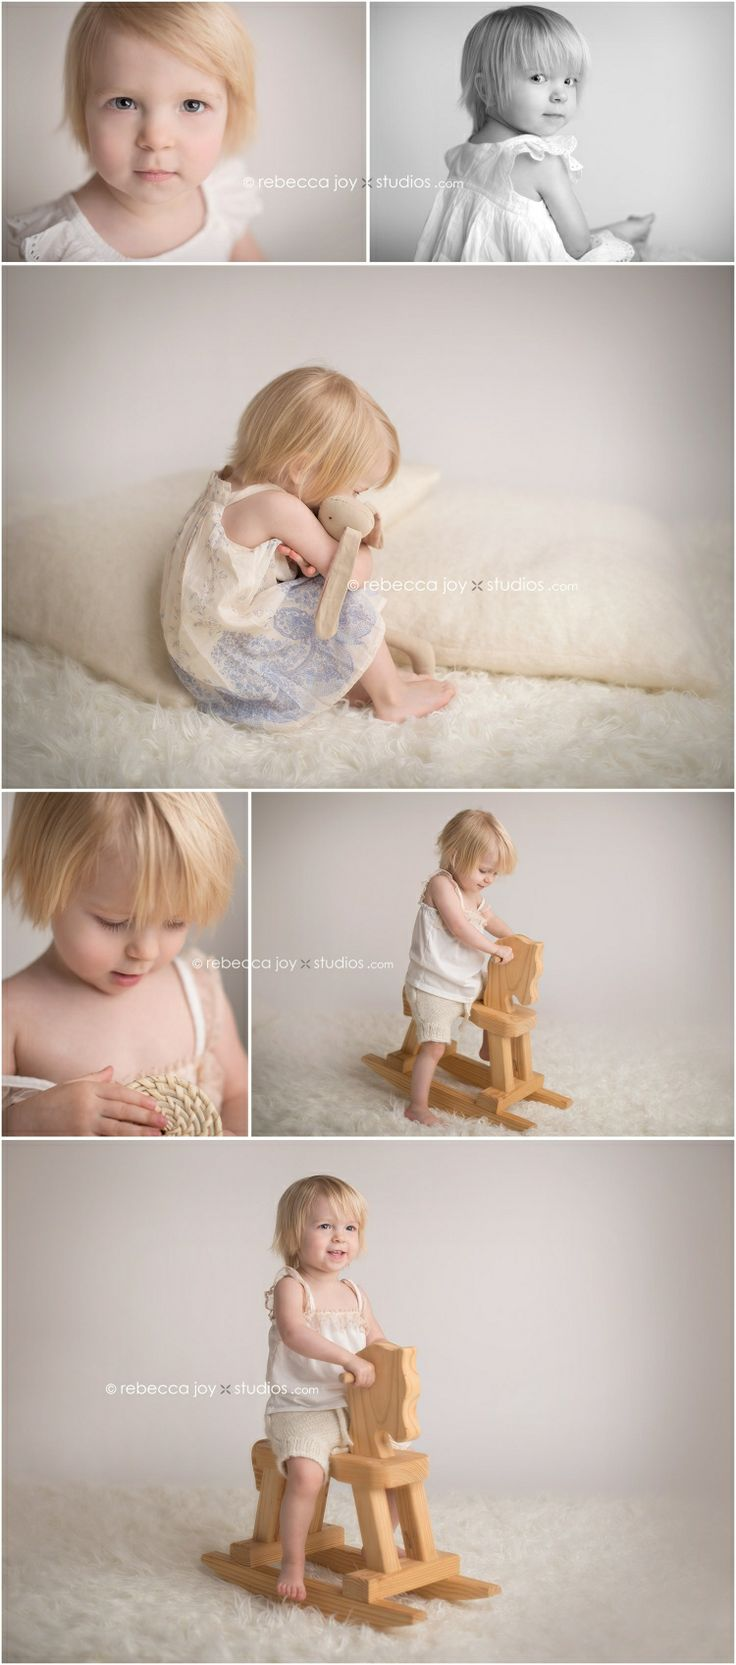 Rebecca Joy Studios | Photography | Victoria BC Child Photographer